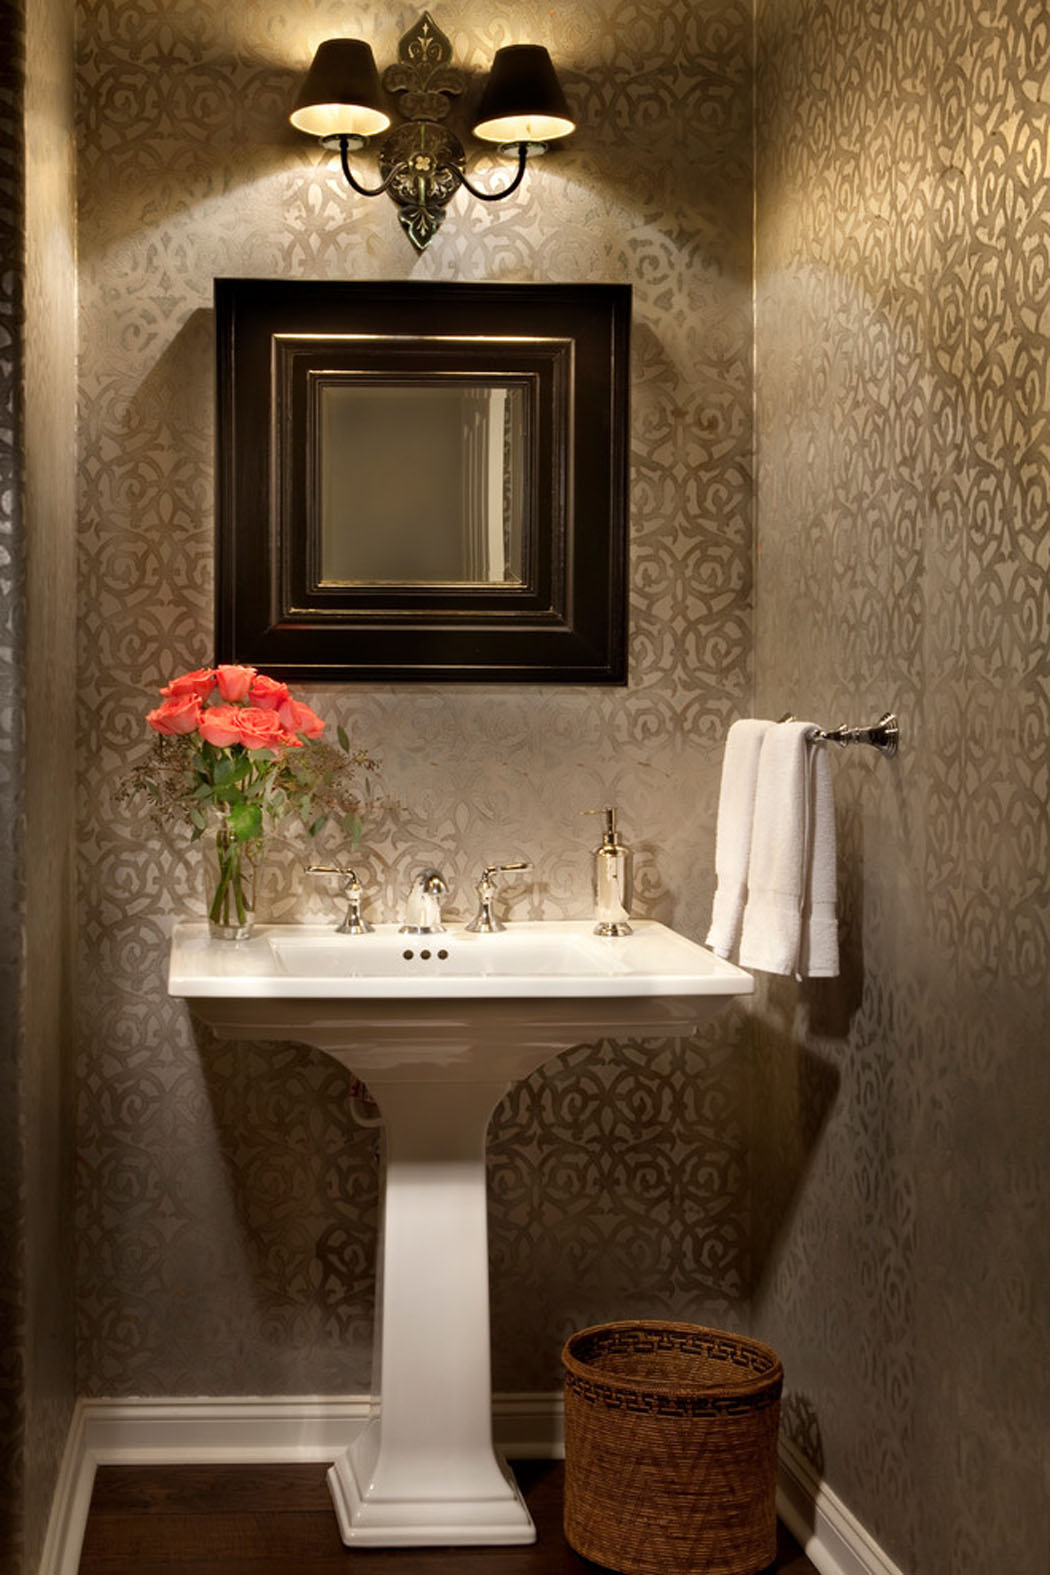 Magnifique maison r nov e los angeles au charme for Decoration des toilettes design